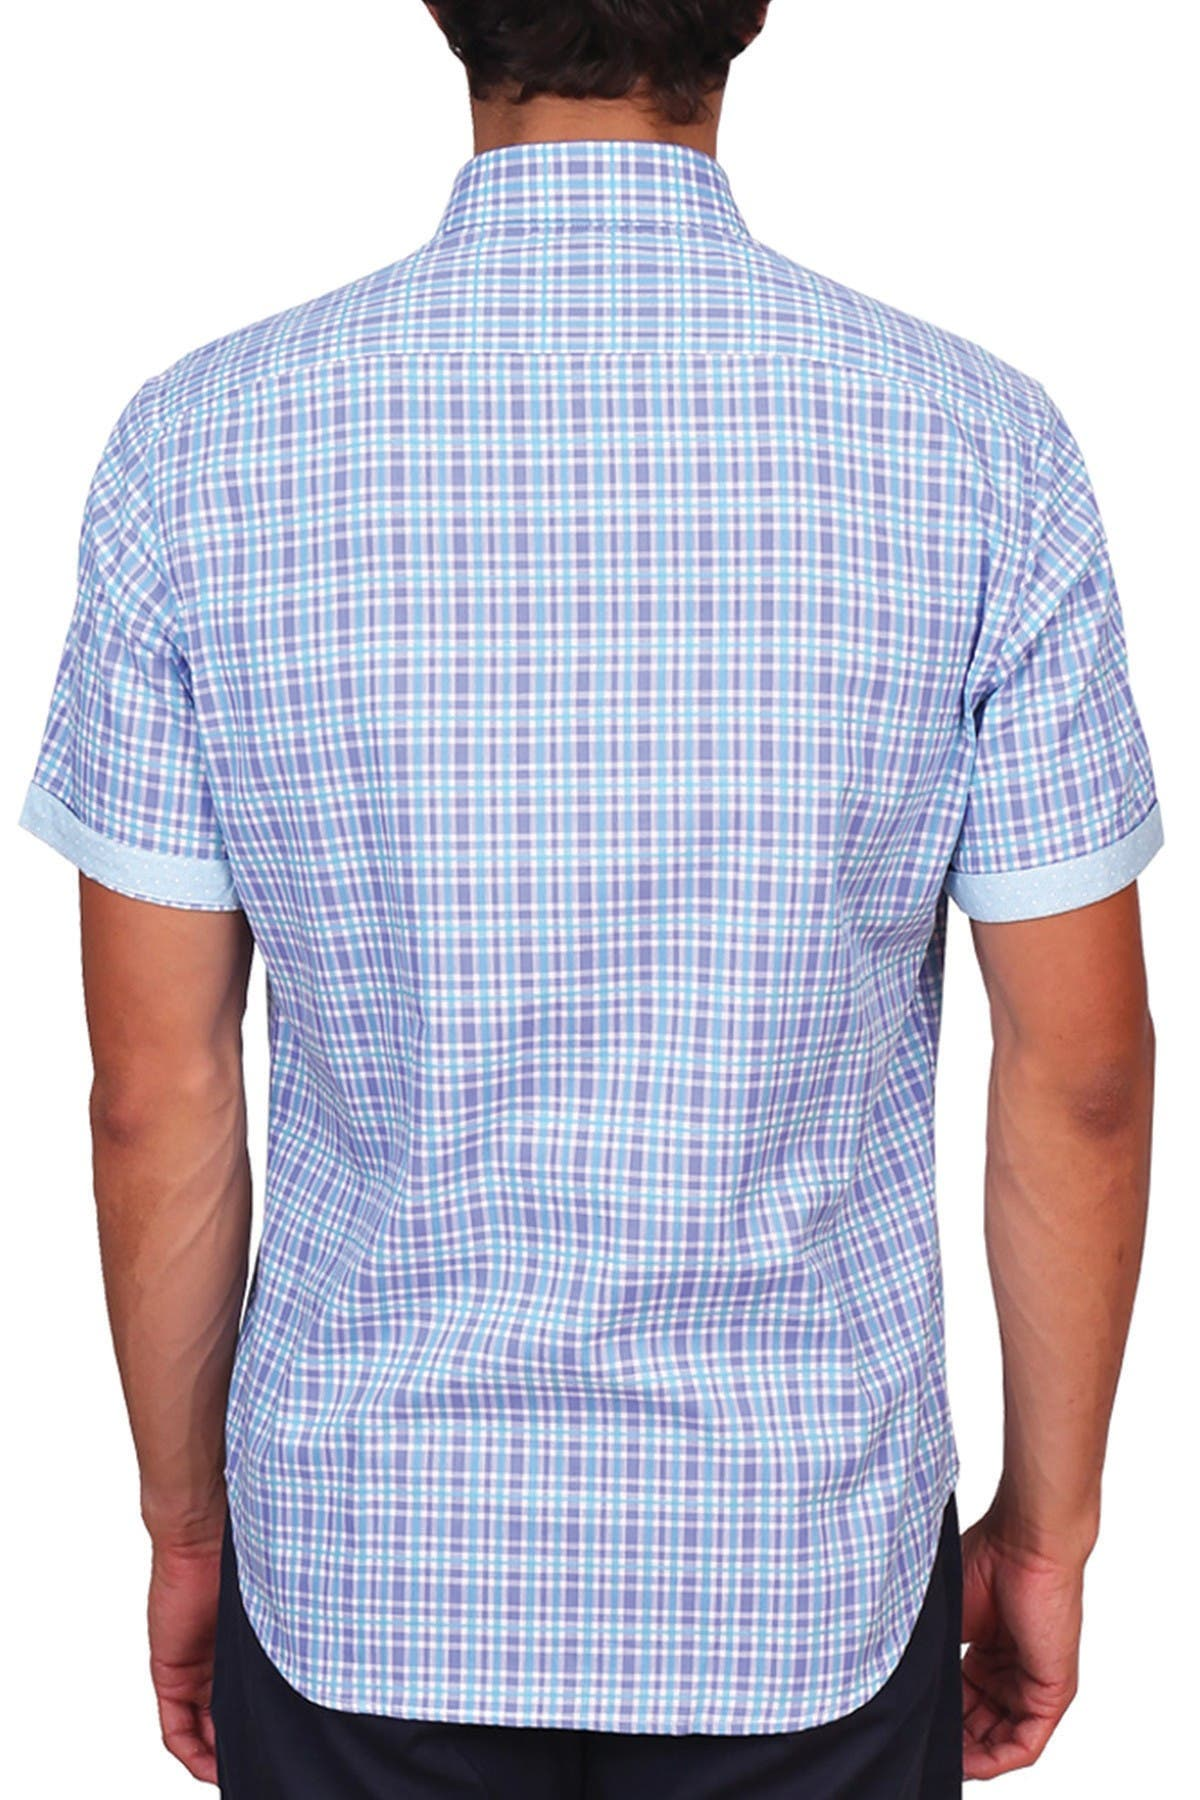 Image of TailorByrd Plaid Print Classic Fit Shirt